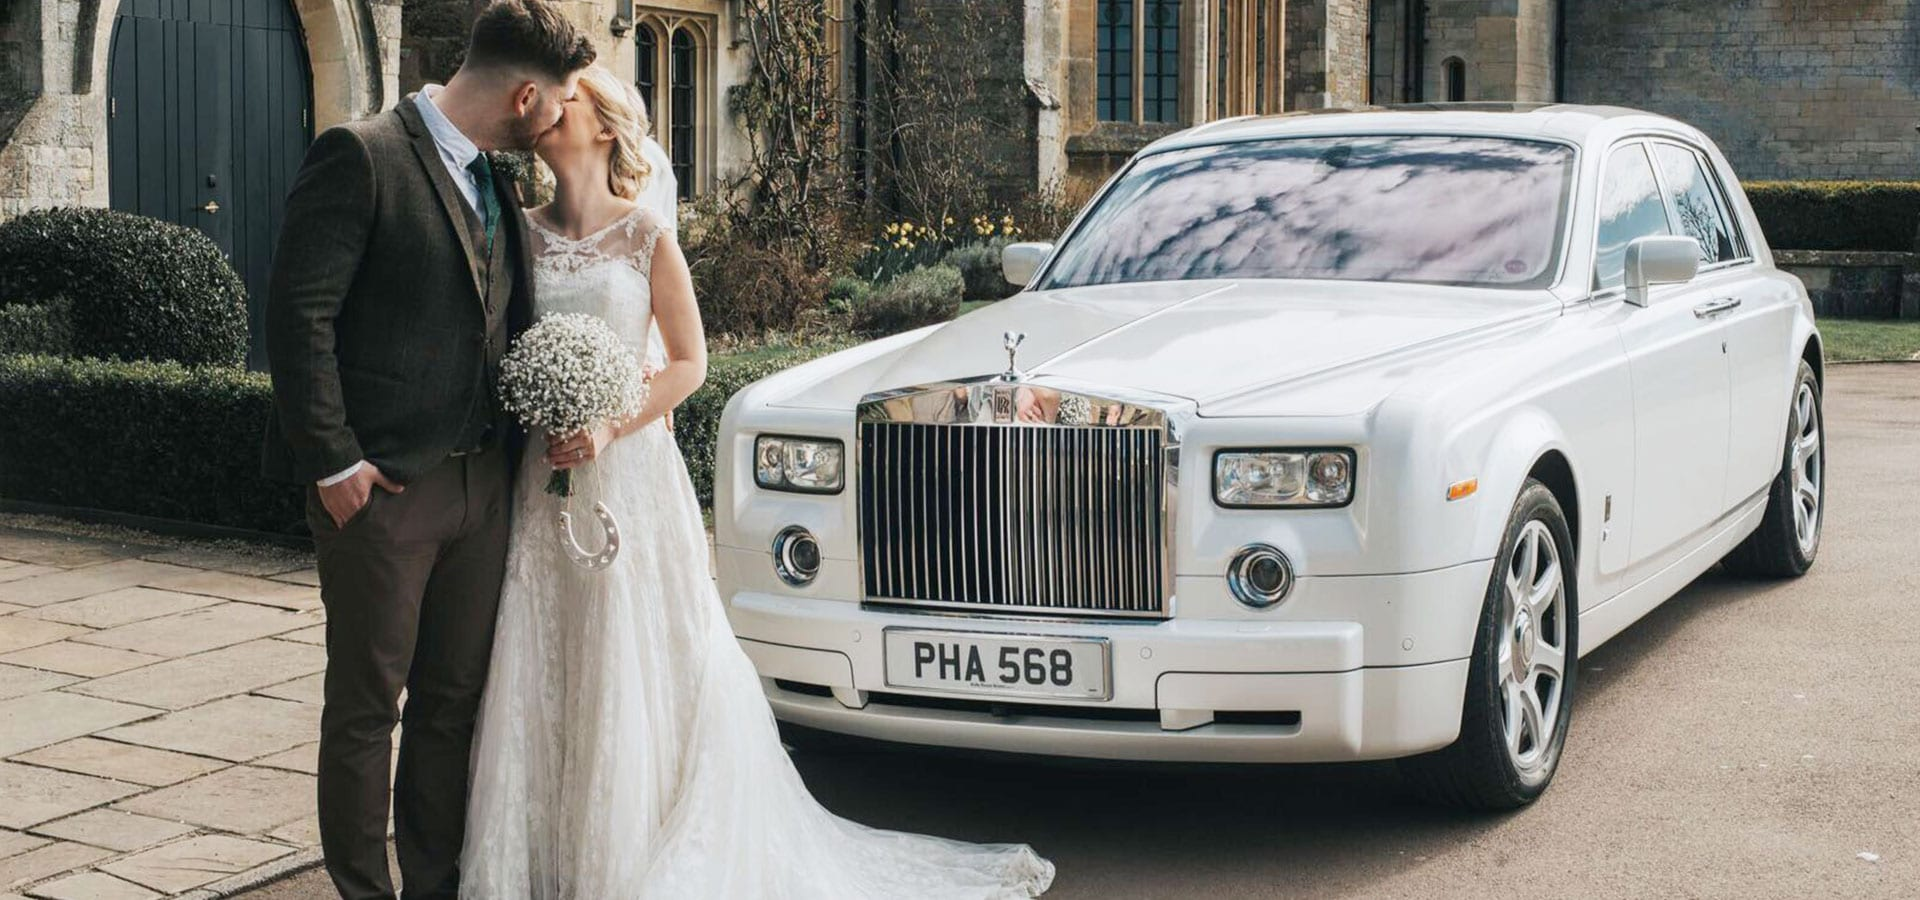 Homepage-Hero-7-Rolls-Royce-Phantom-Newlywed-couple